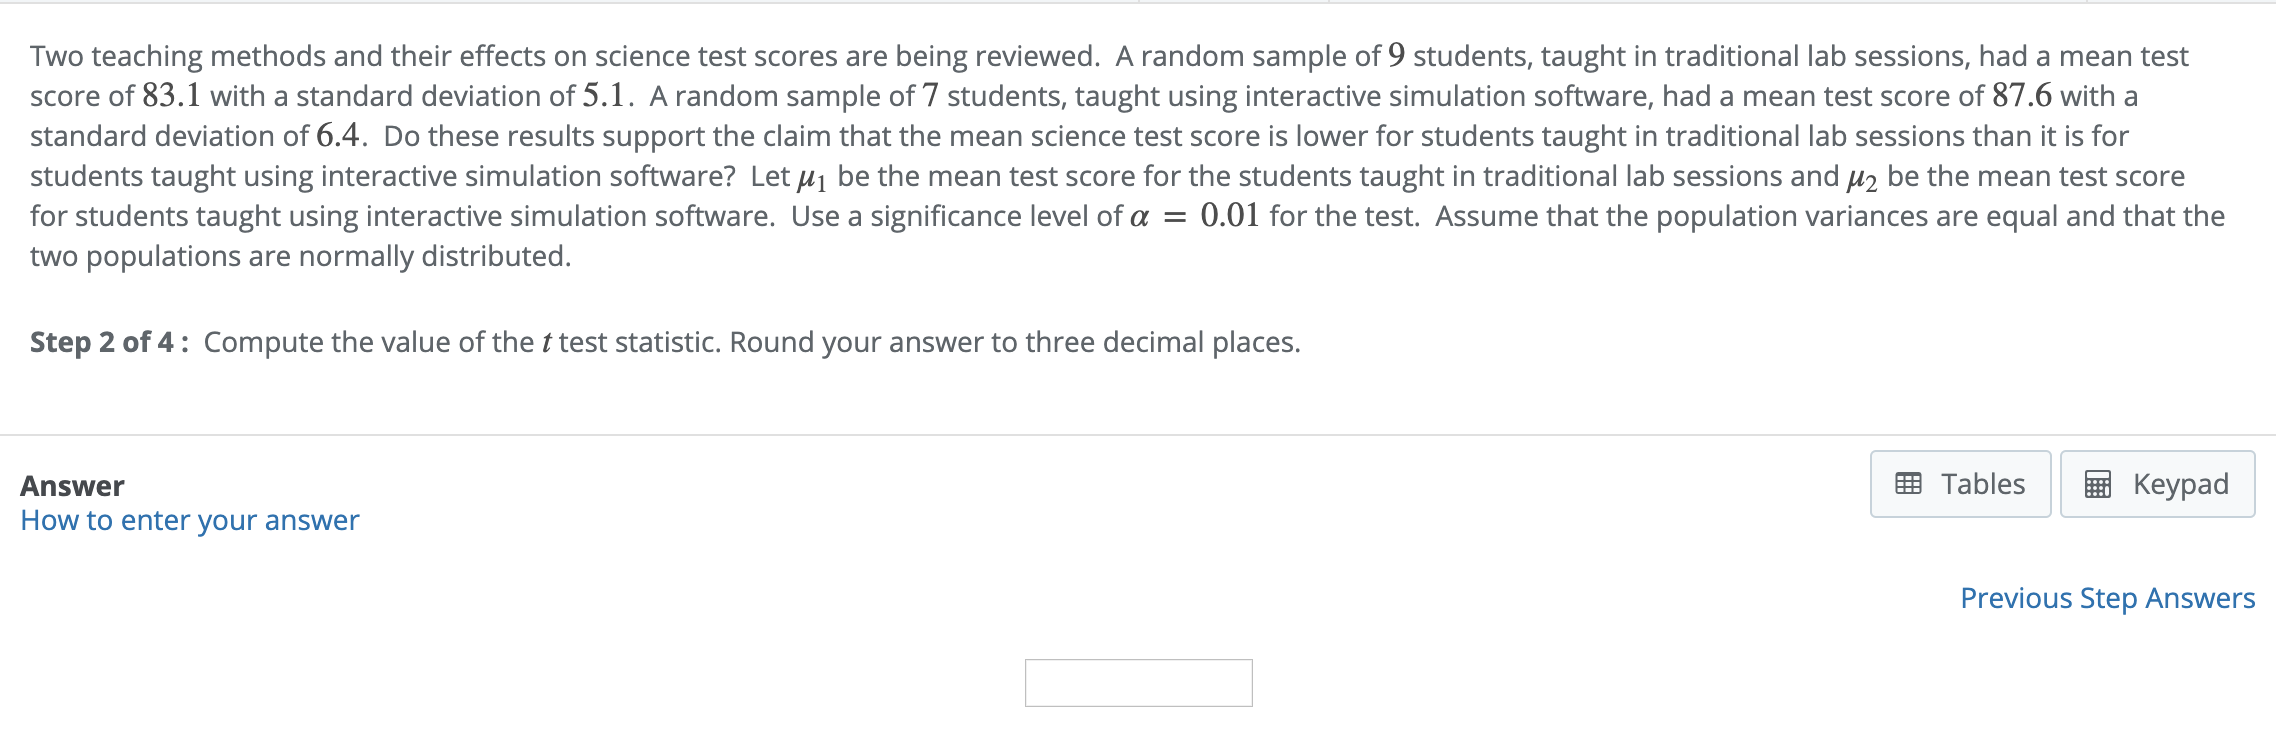 Two teaching methods and their effects on science test scores are being reviewed. A random sample of 9 students, taught in traditional lab sessions, had a mean test score of 83.1 with a standard deviation of 5.1. A random sample of 7 students, taught using interactive simulation software, had a mean test score of 87.6 with a standard deviation of 6.4. Do these results support the claim that the mean science test score is lower for students taught in traditional lab sessions than it is for students taught using interactive simulation software? Let be the mean test score for the students taught in traditional lab sessions and μ2 be the mean test score for students taught using interactive simulation software. Use a significance level of α = 0.01 for the test. Assume that the population variances are equal and that the two populations are normally distributed. Step 2 of 4: Compute the value of the t test statistic. Round your answer to three decimal places EB TablesKeypad Answer How to enter your answer Previous Step Answers